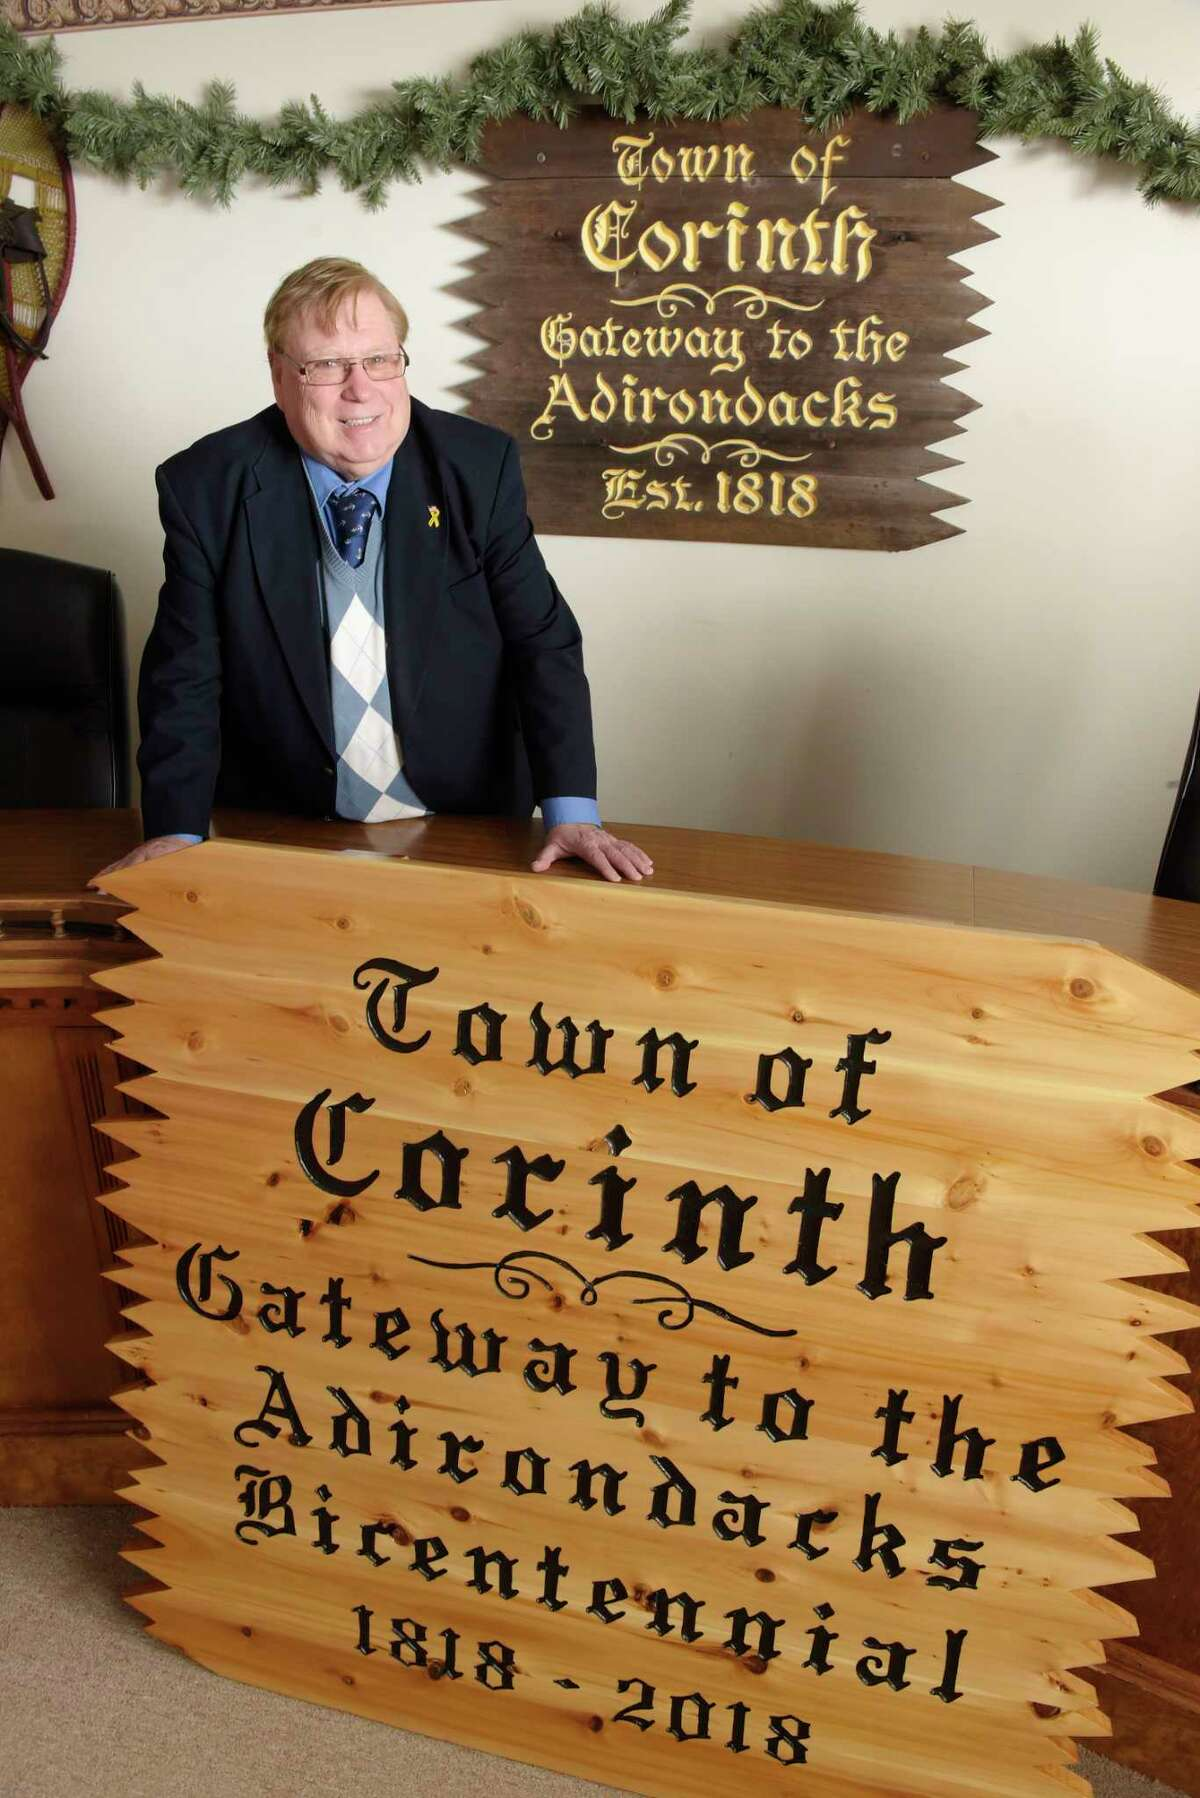 Corinth Town Supervisor Richard Lucia poses with one of the new town signs at Corinth Town Hall on Thursday, March 15, 2018, in Corinth, N.Y. Lucia is retiring after 28 years as town supervisor. (Paul Buckowski/Times Union)